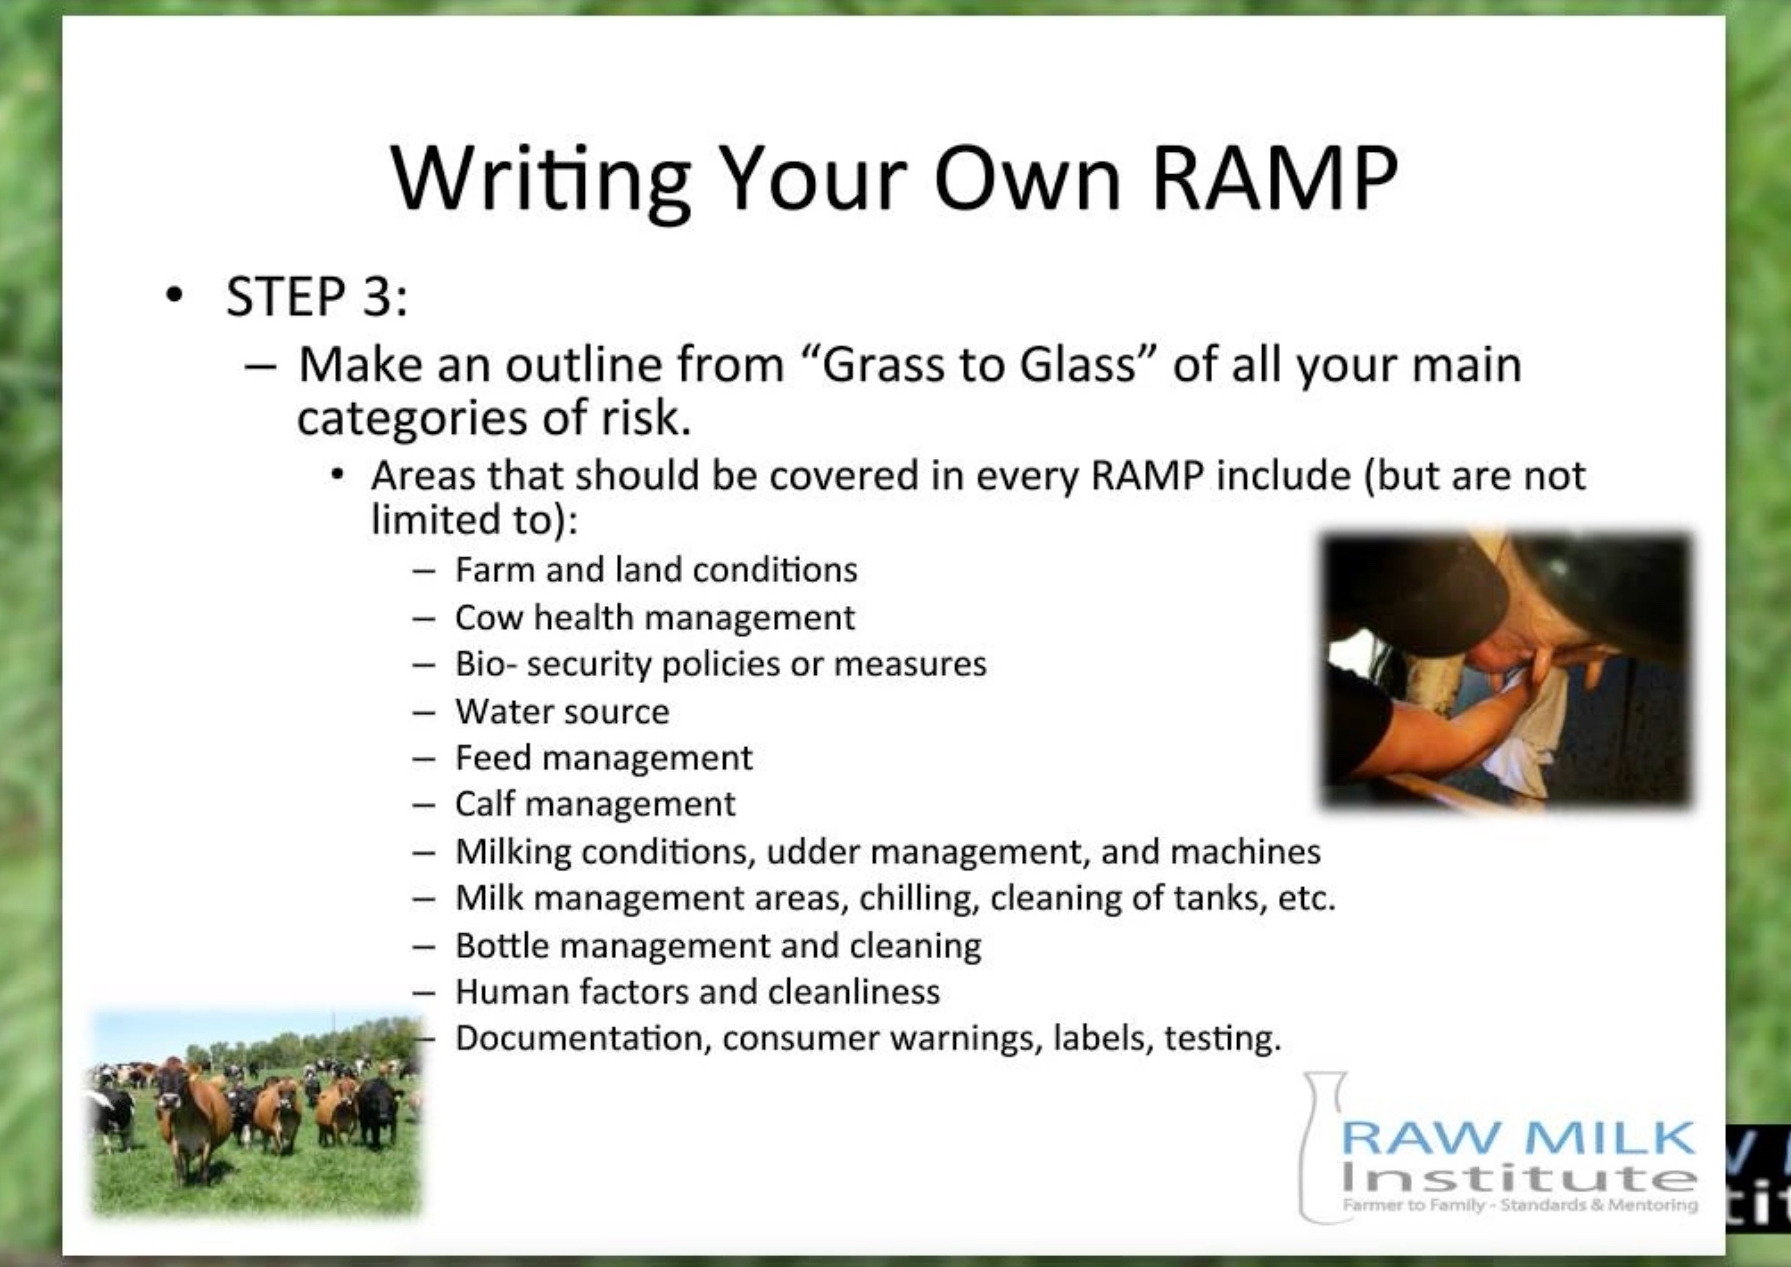 Image:   a snapshot from the Write your own RAMP webinar showing the areas that should be included in every RAMP, click to enlarge image.